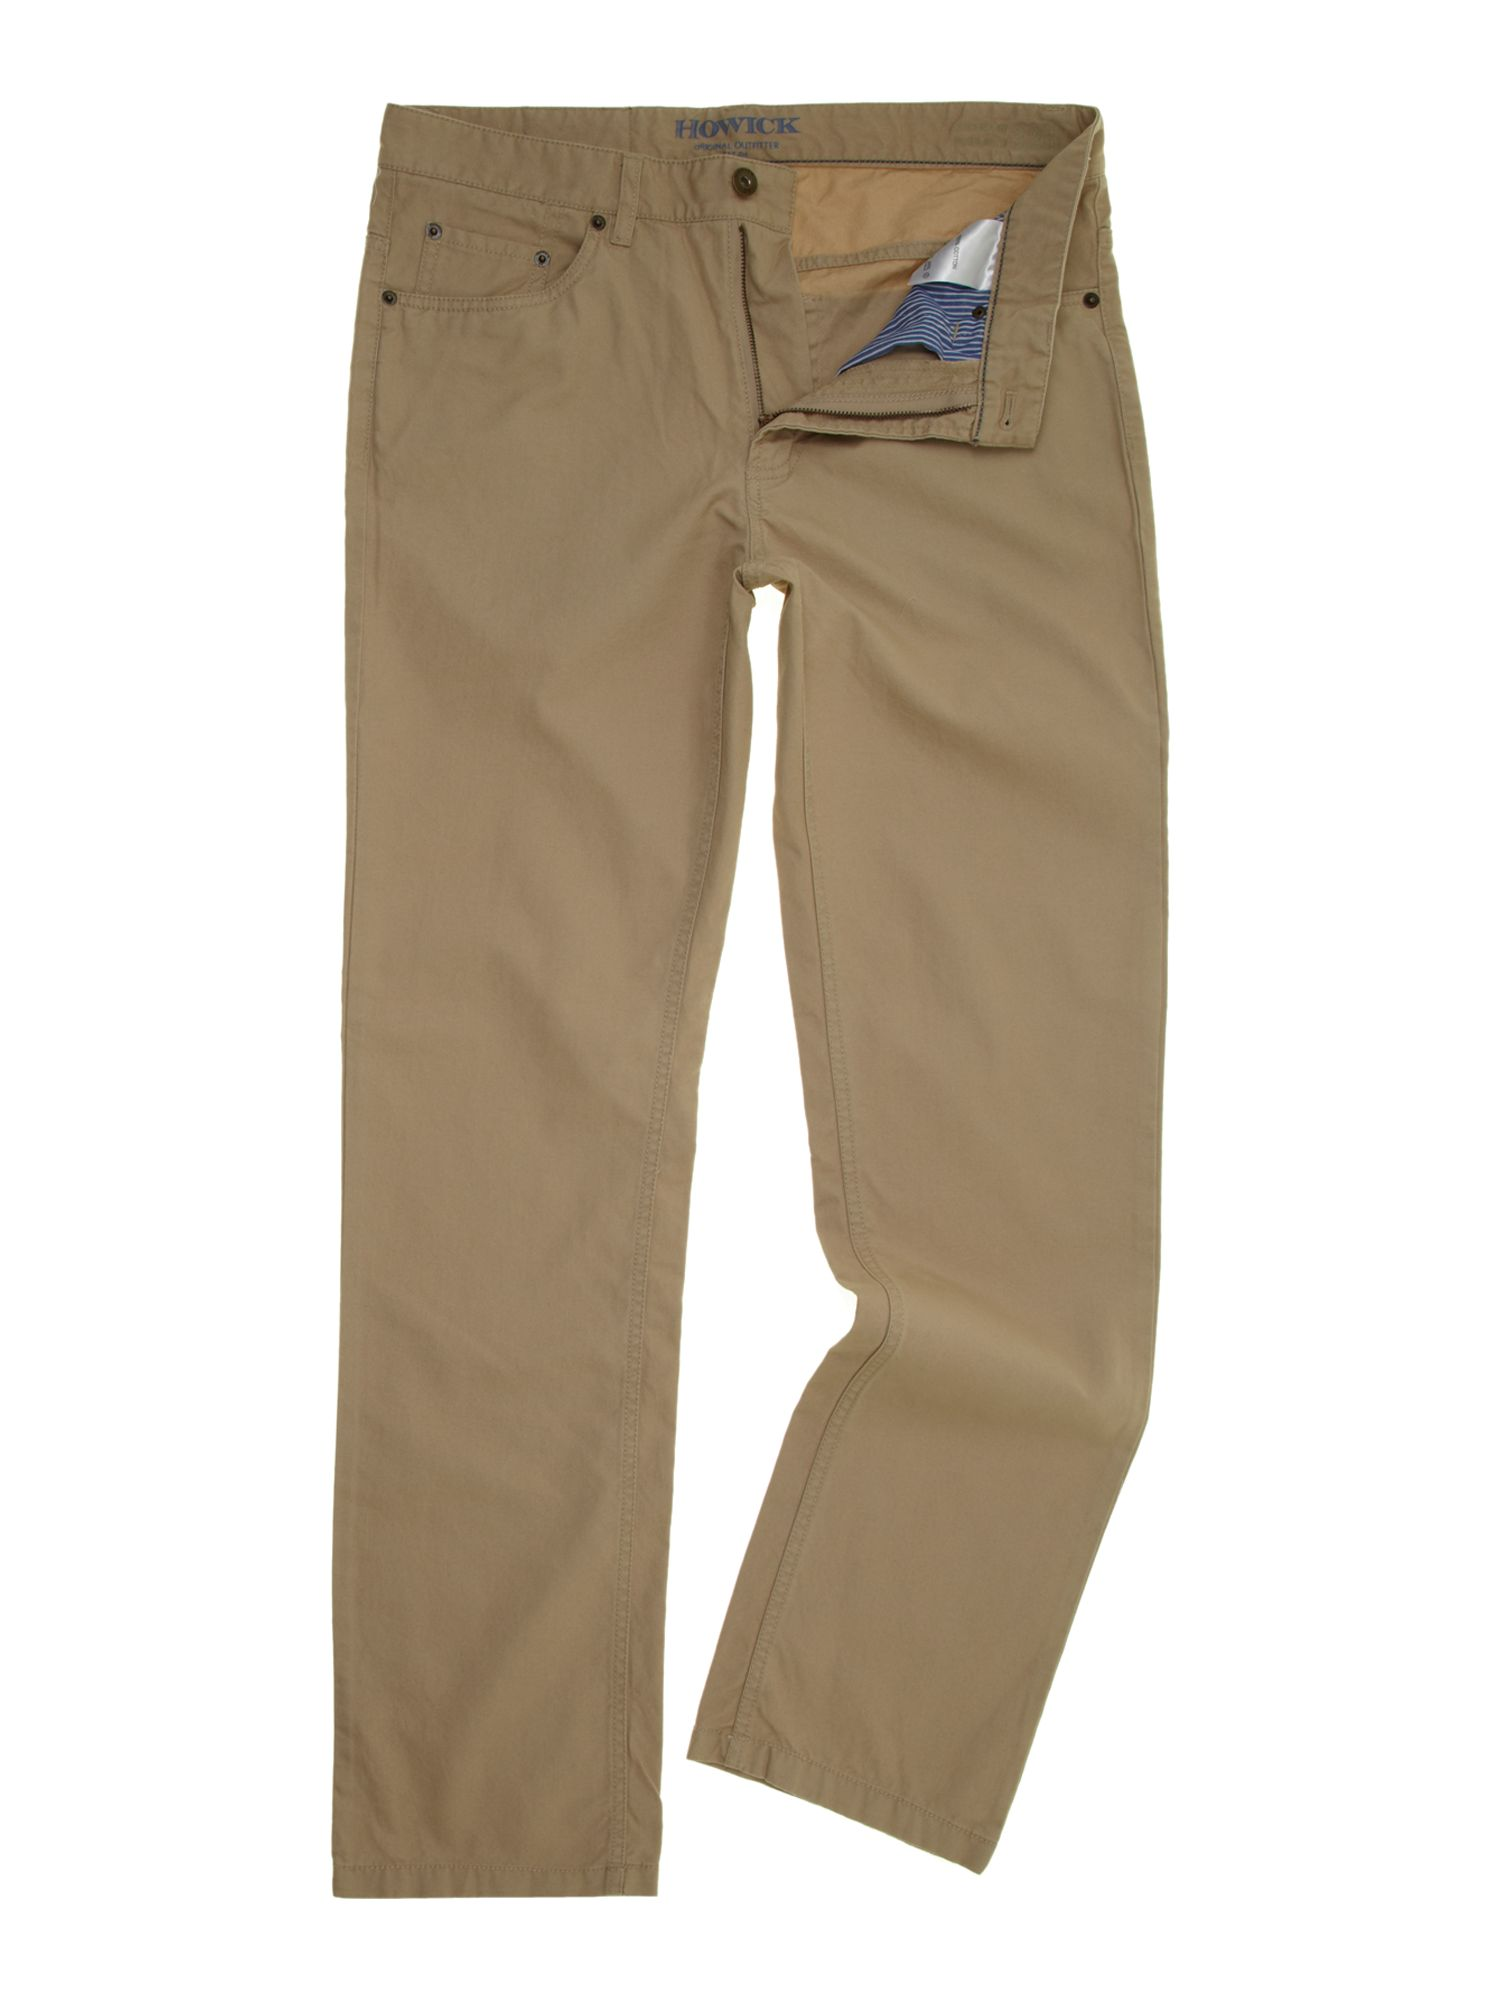 Bridgeport canvas jeans